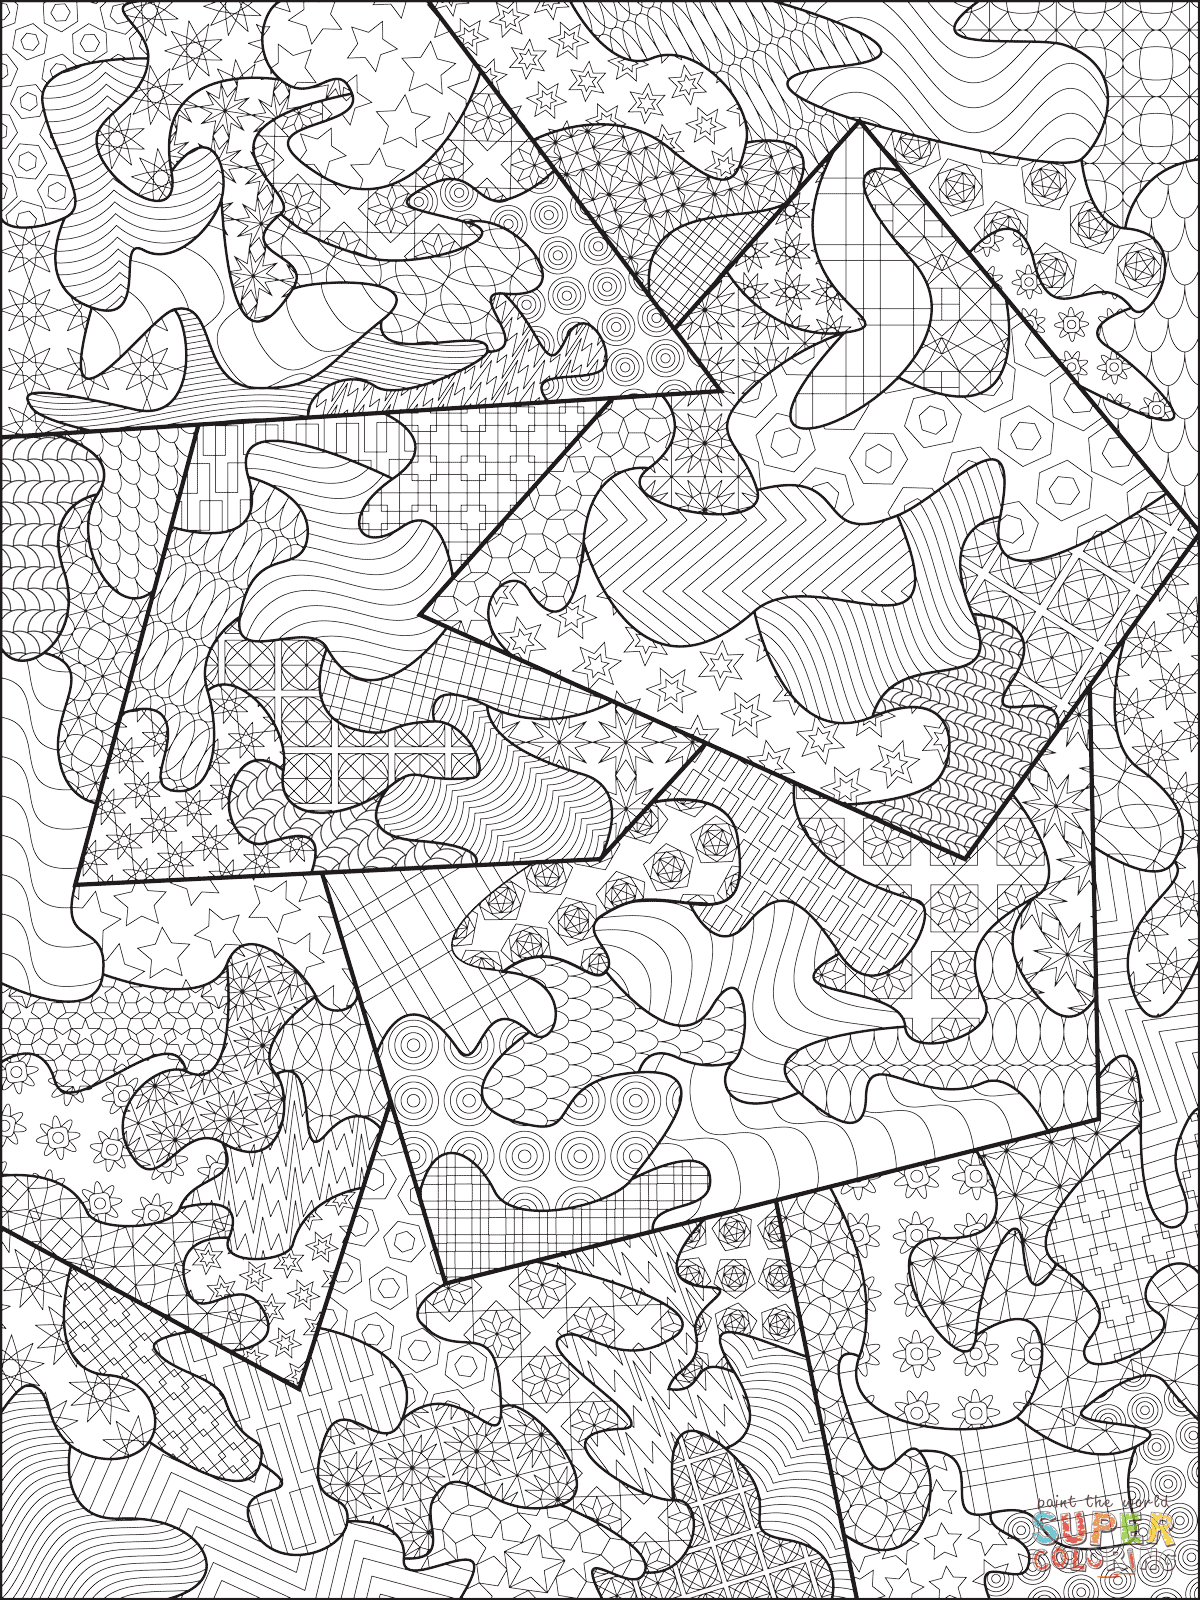 Abstract Zentangle coloring page | Free Printable Coloring ...